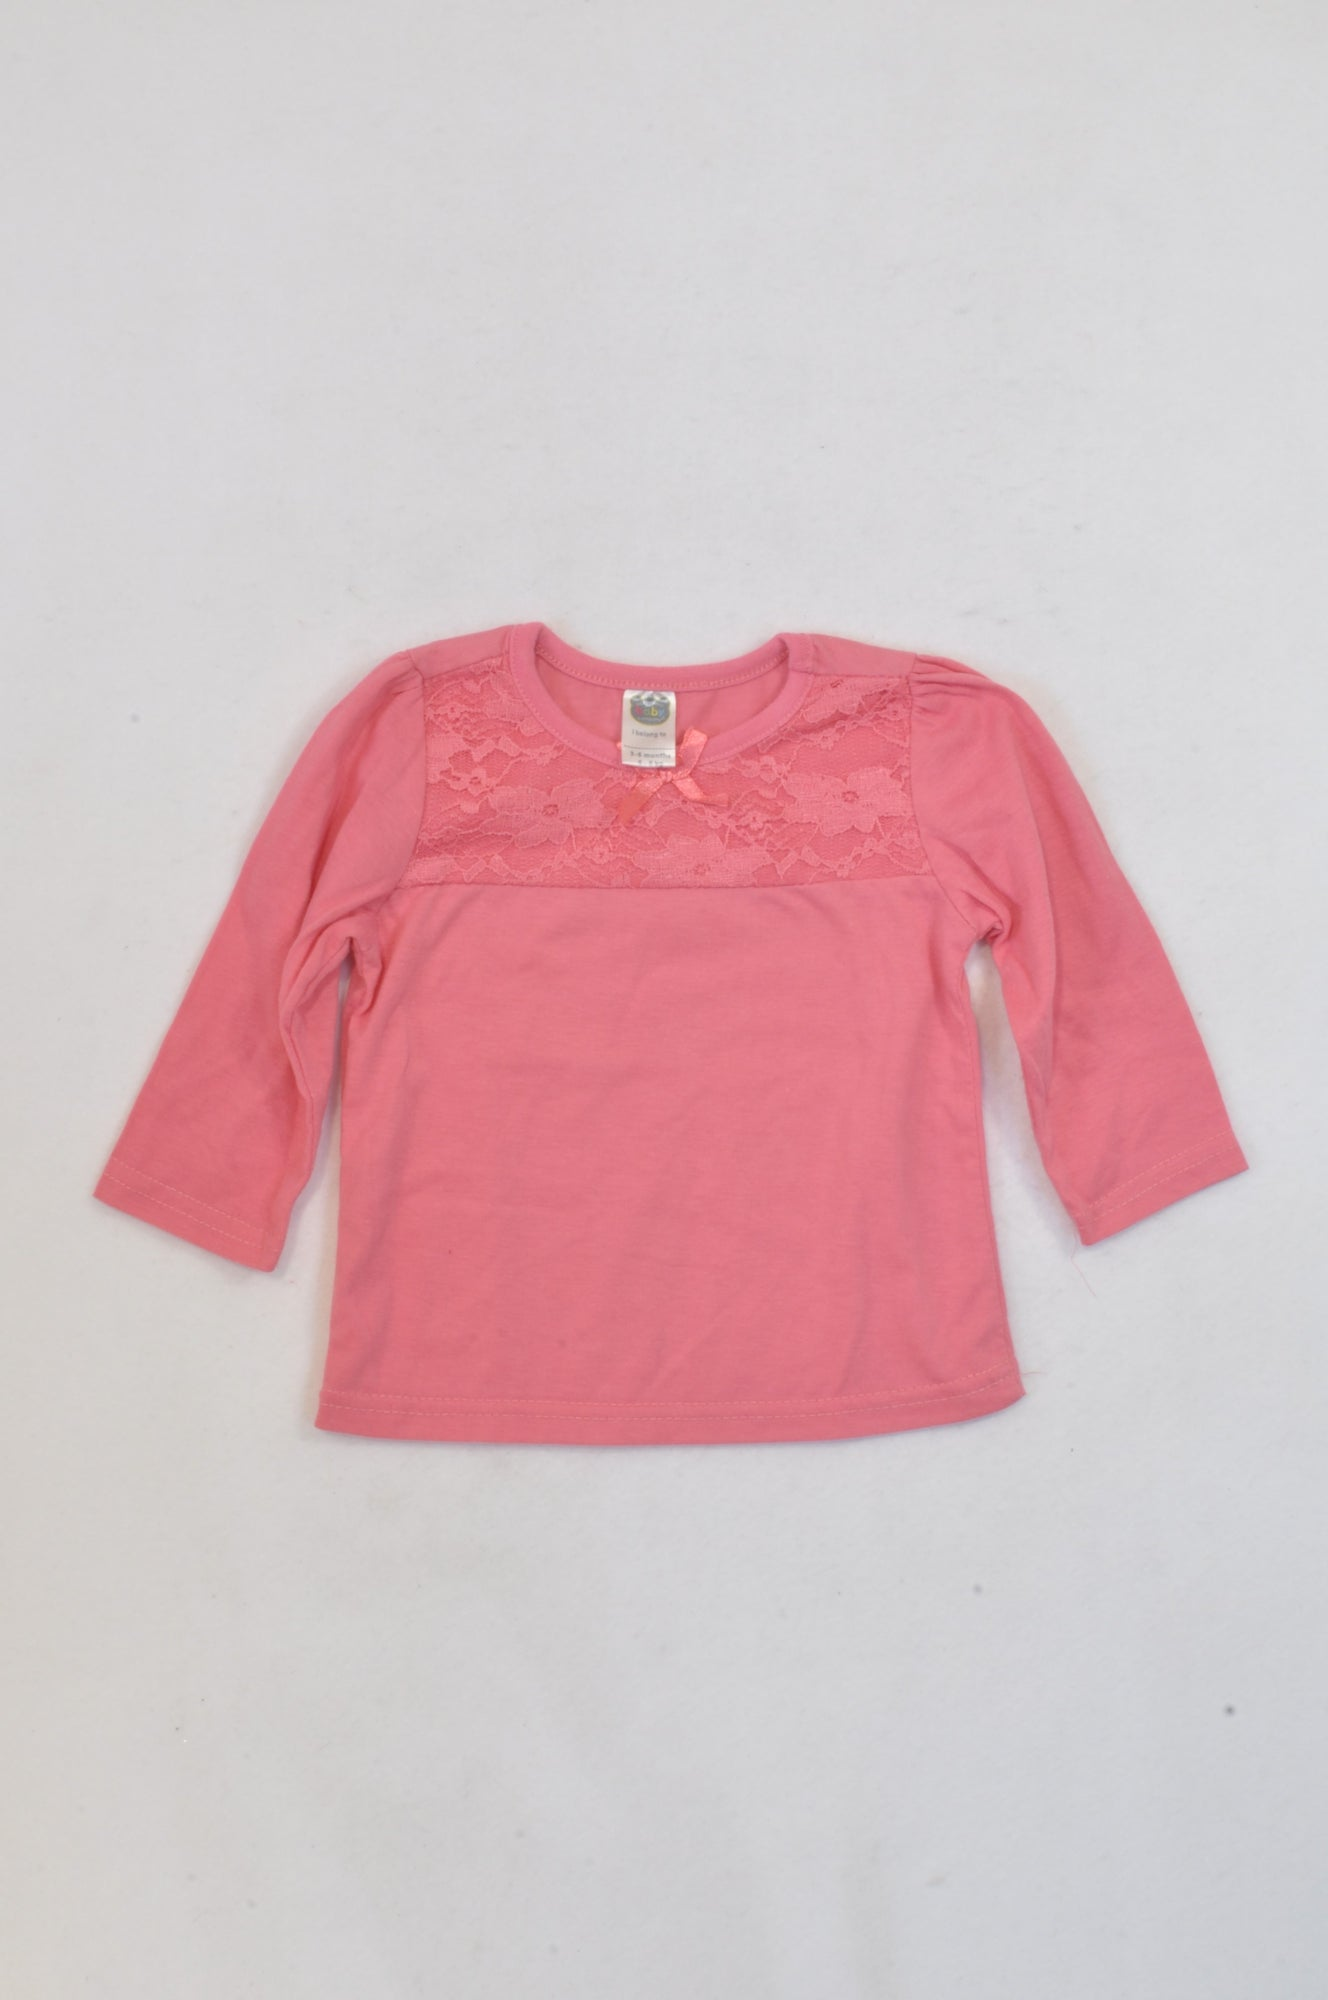 Ackermans Pink Lace Overlay T-shirt Girls 3-6 months